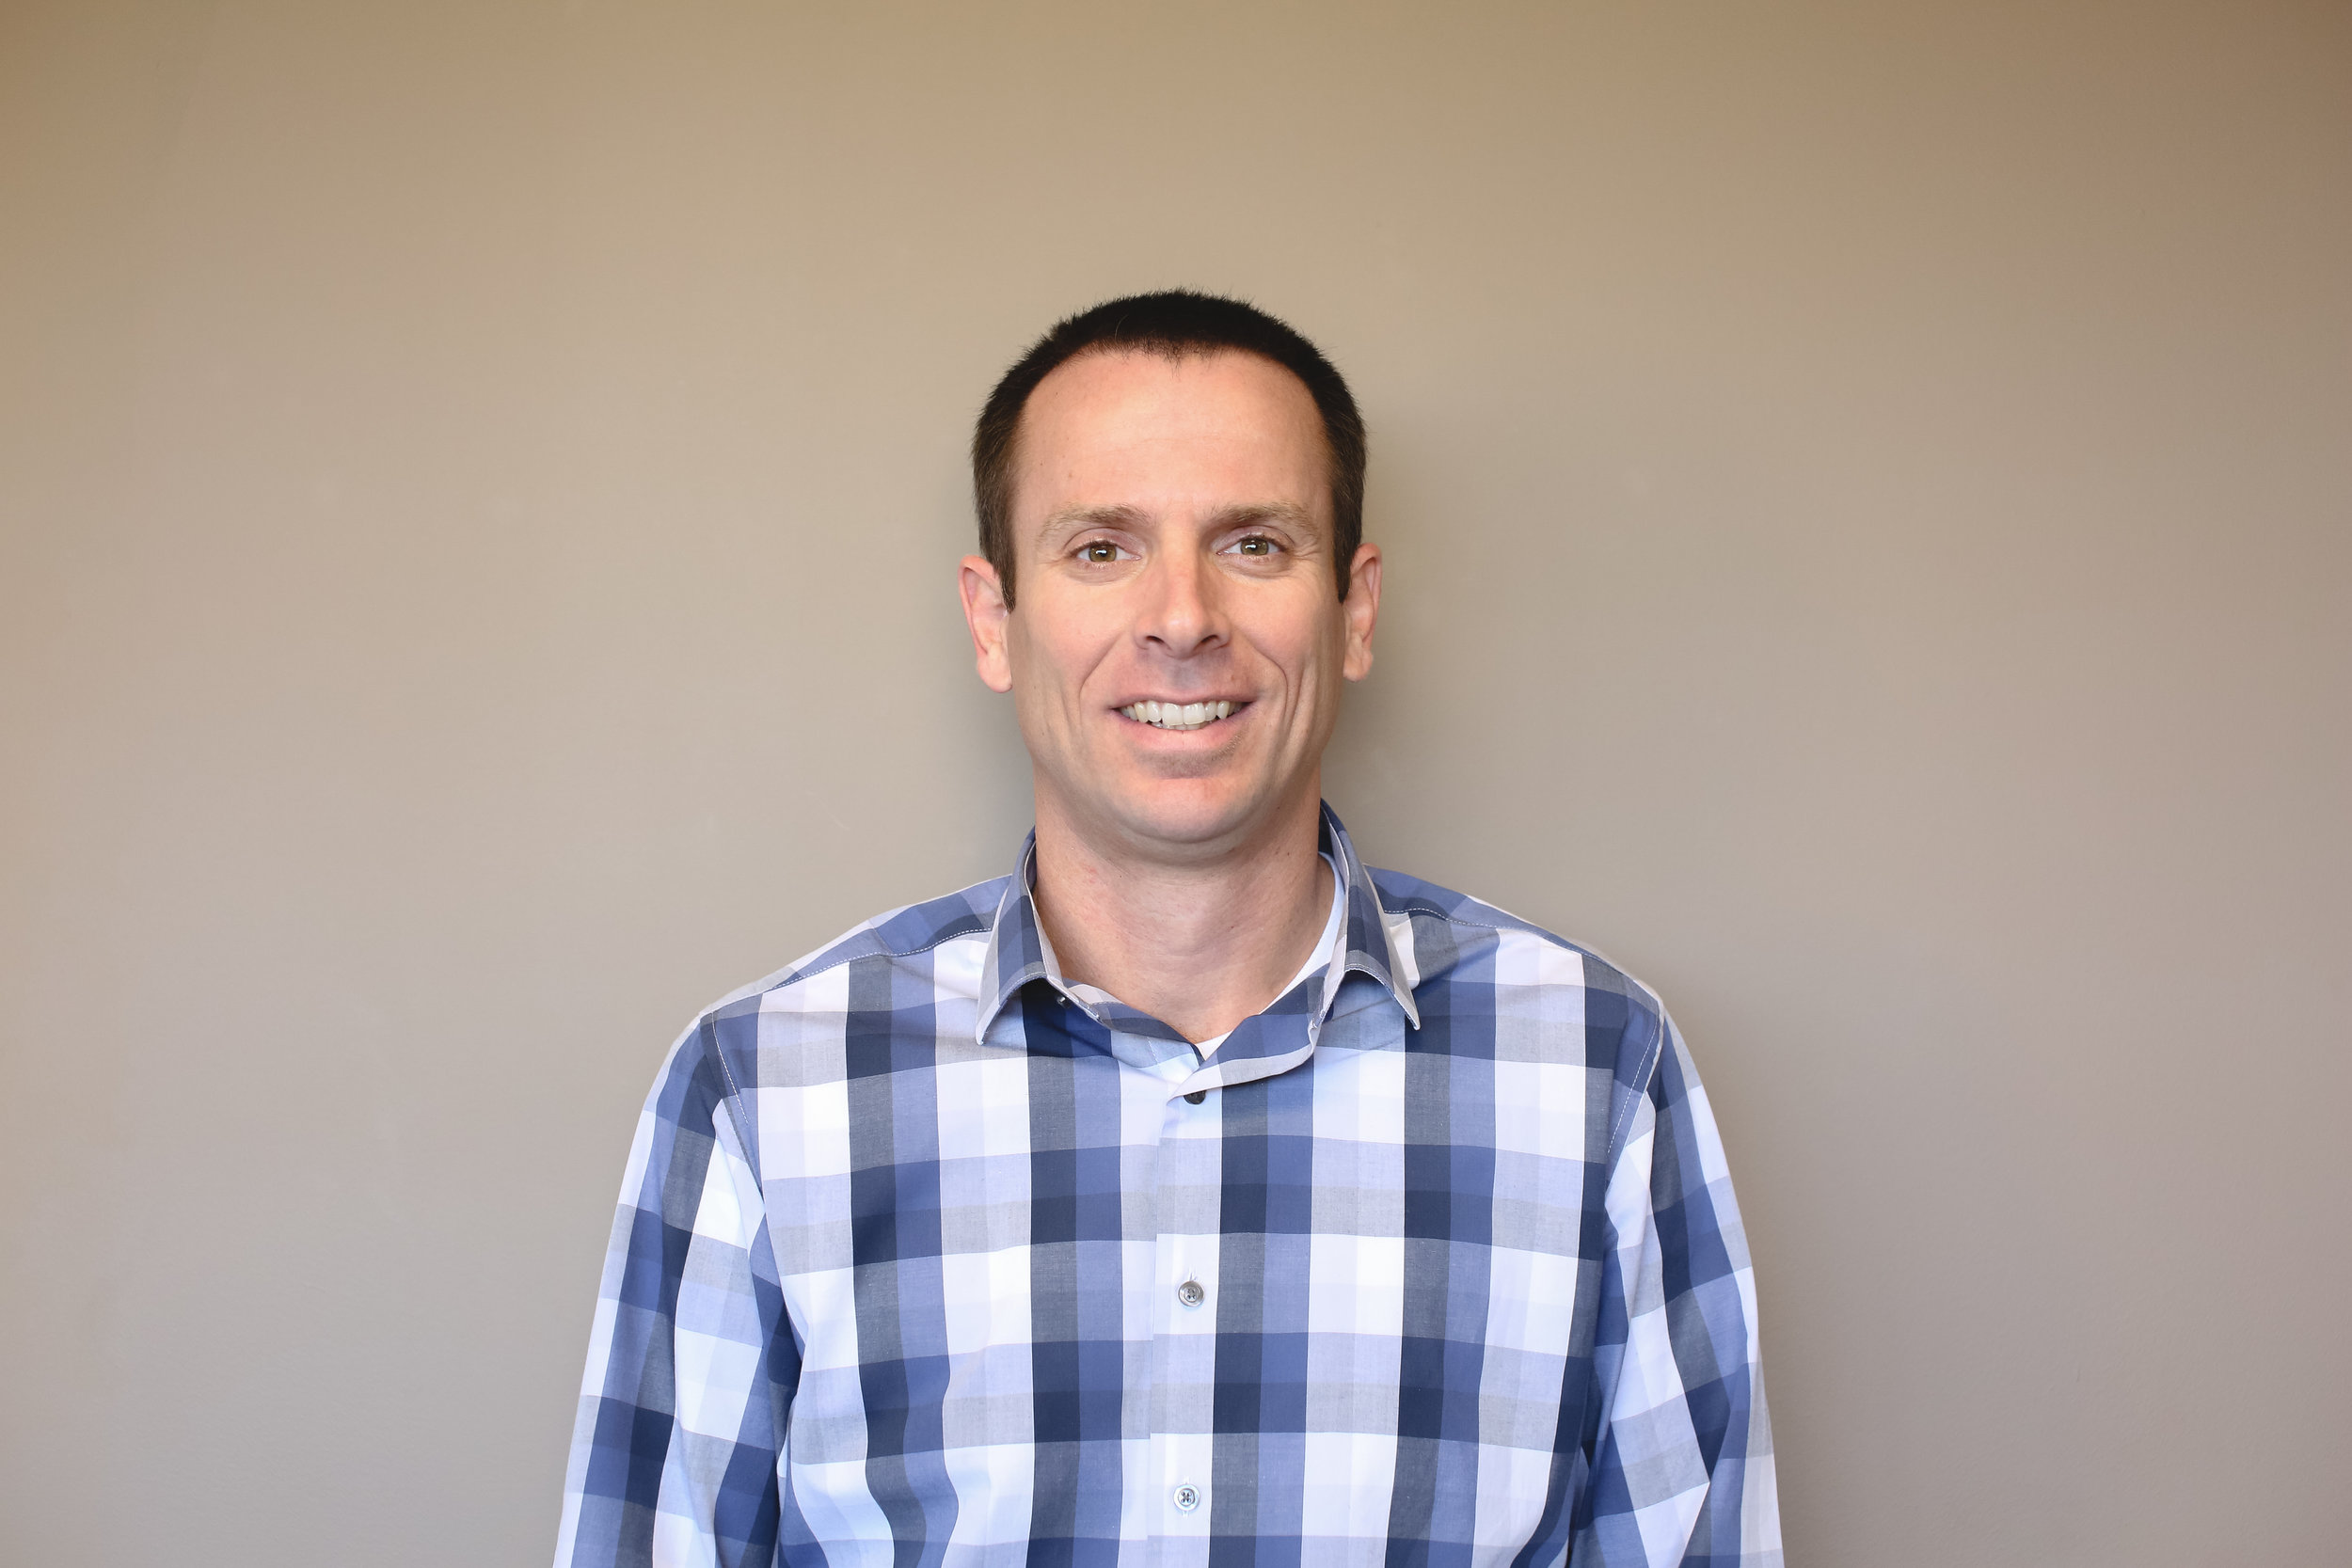 Have questions about Membership? - Ask Brad Hixon, our Teaching Pastor!